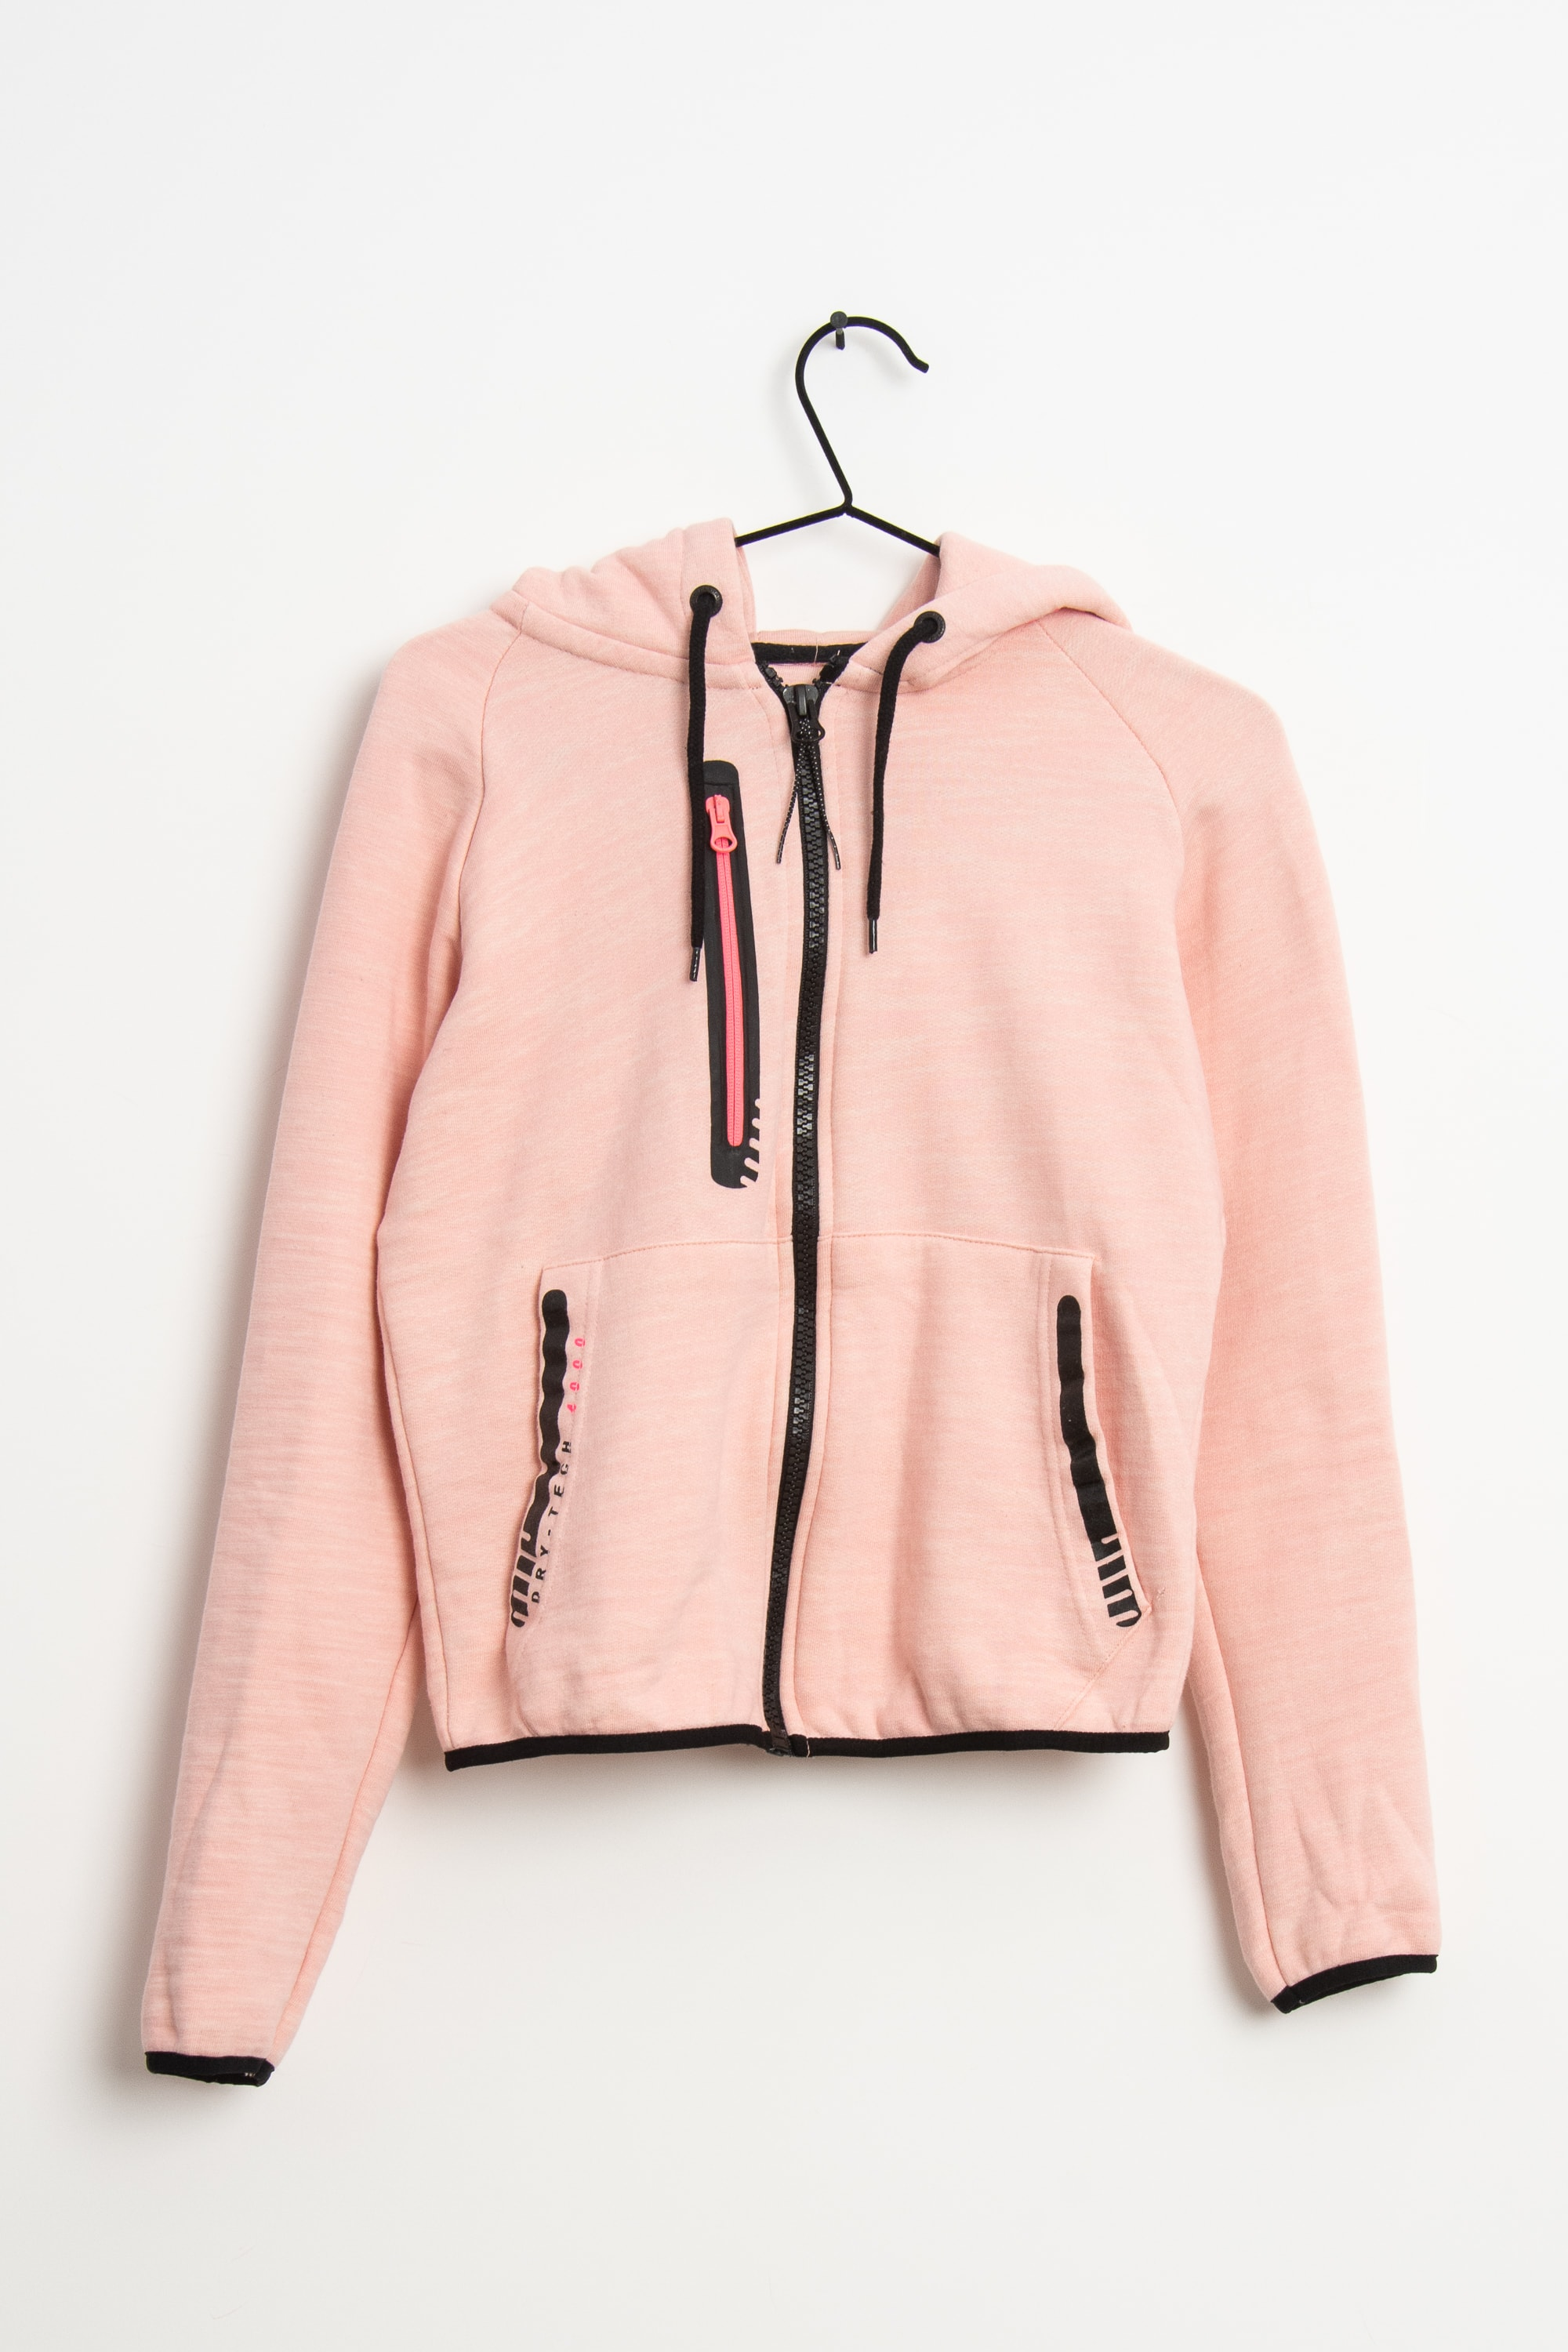 Geographical Norway Strickjacke Pink Gr.S